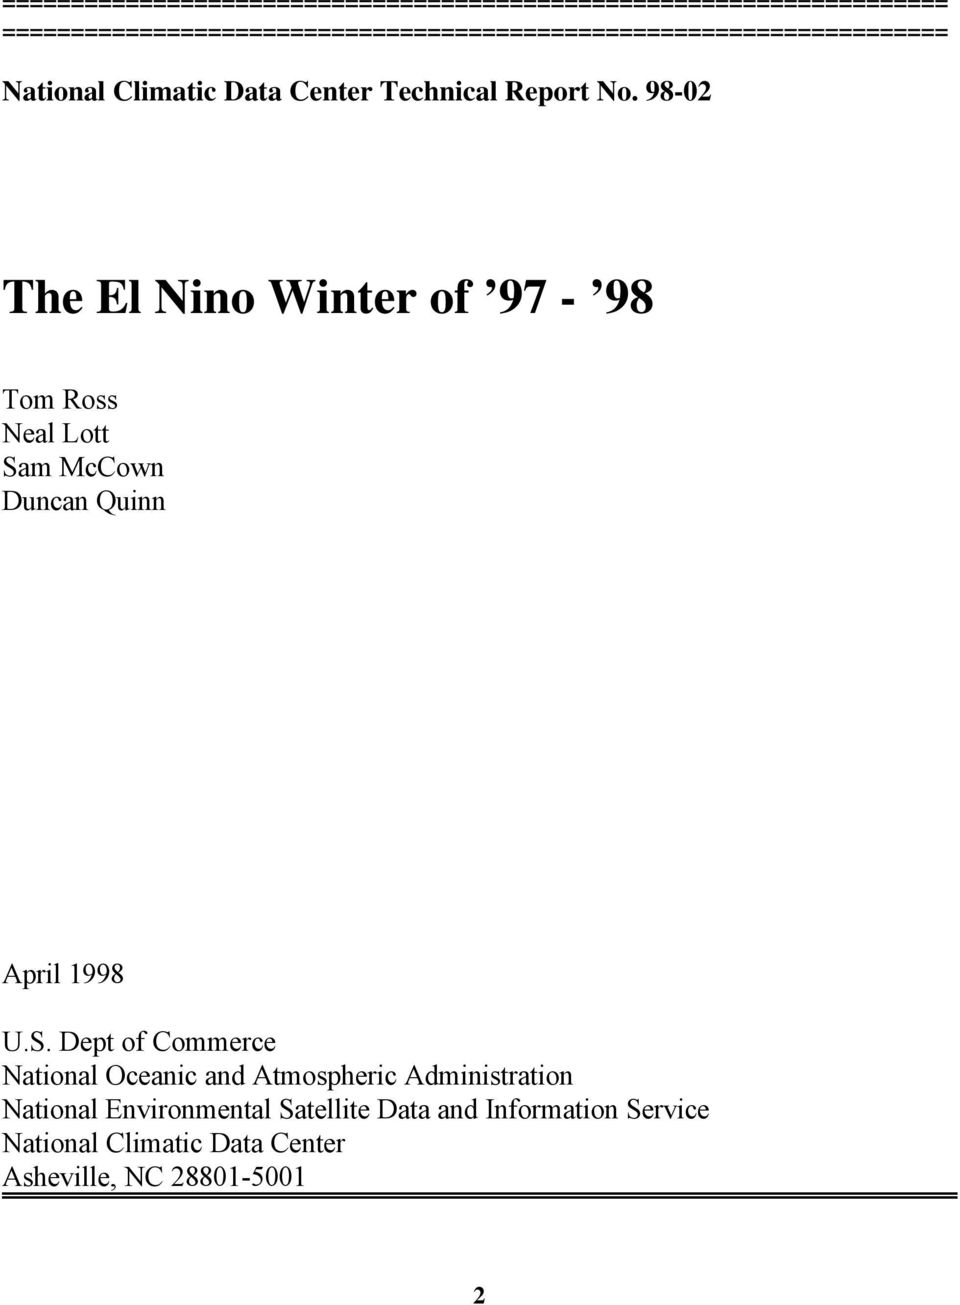 98-02 The El Nino Winter of 97-98 Tom Ross Neal Lott Sa